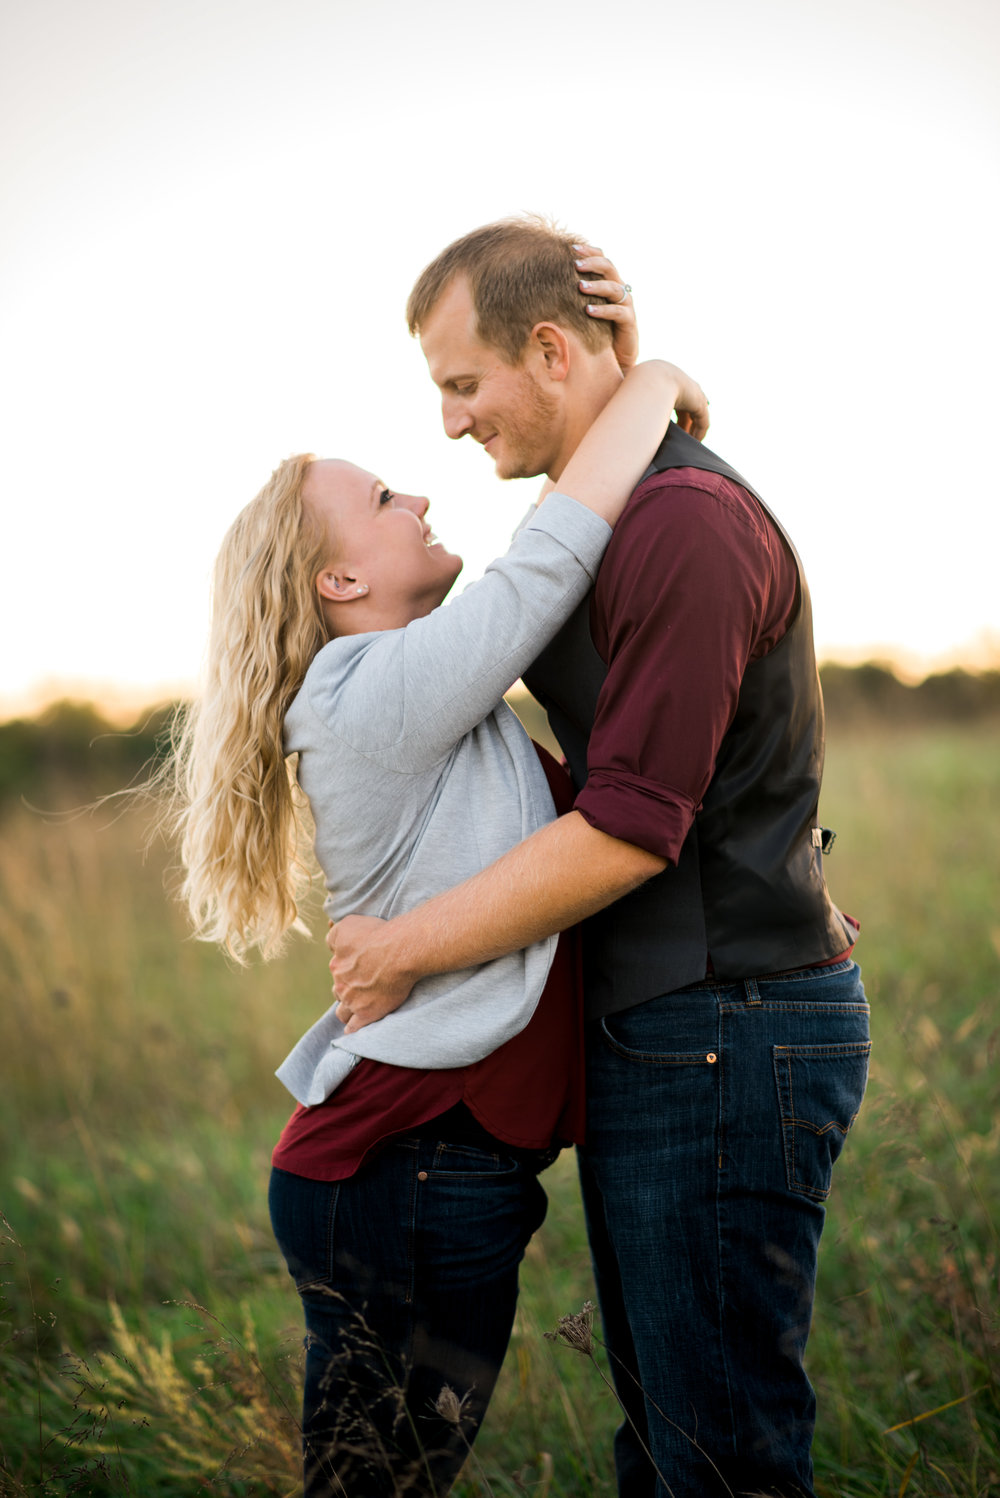 Lynchburg_College_Sorella_Farms_Baseball_Ballet_Virginia_Engagement_Session_Wedding_Photographers (88).jpg